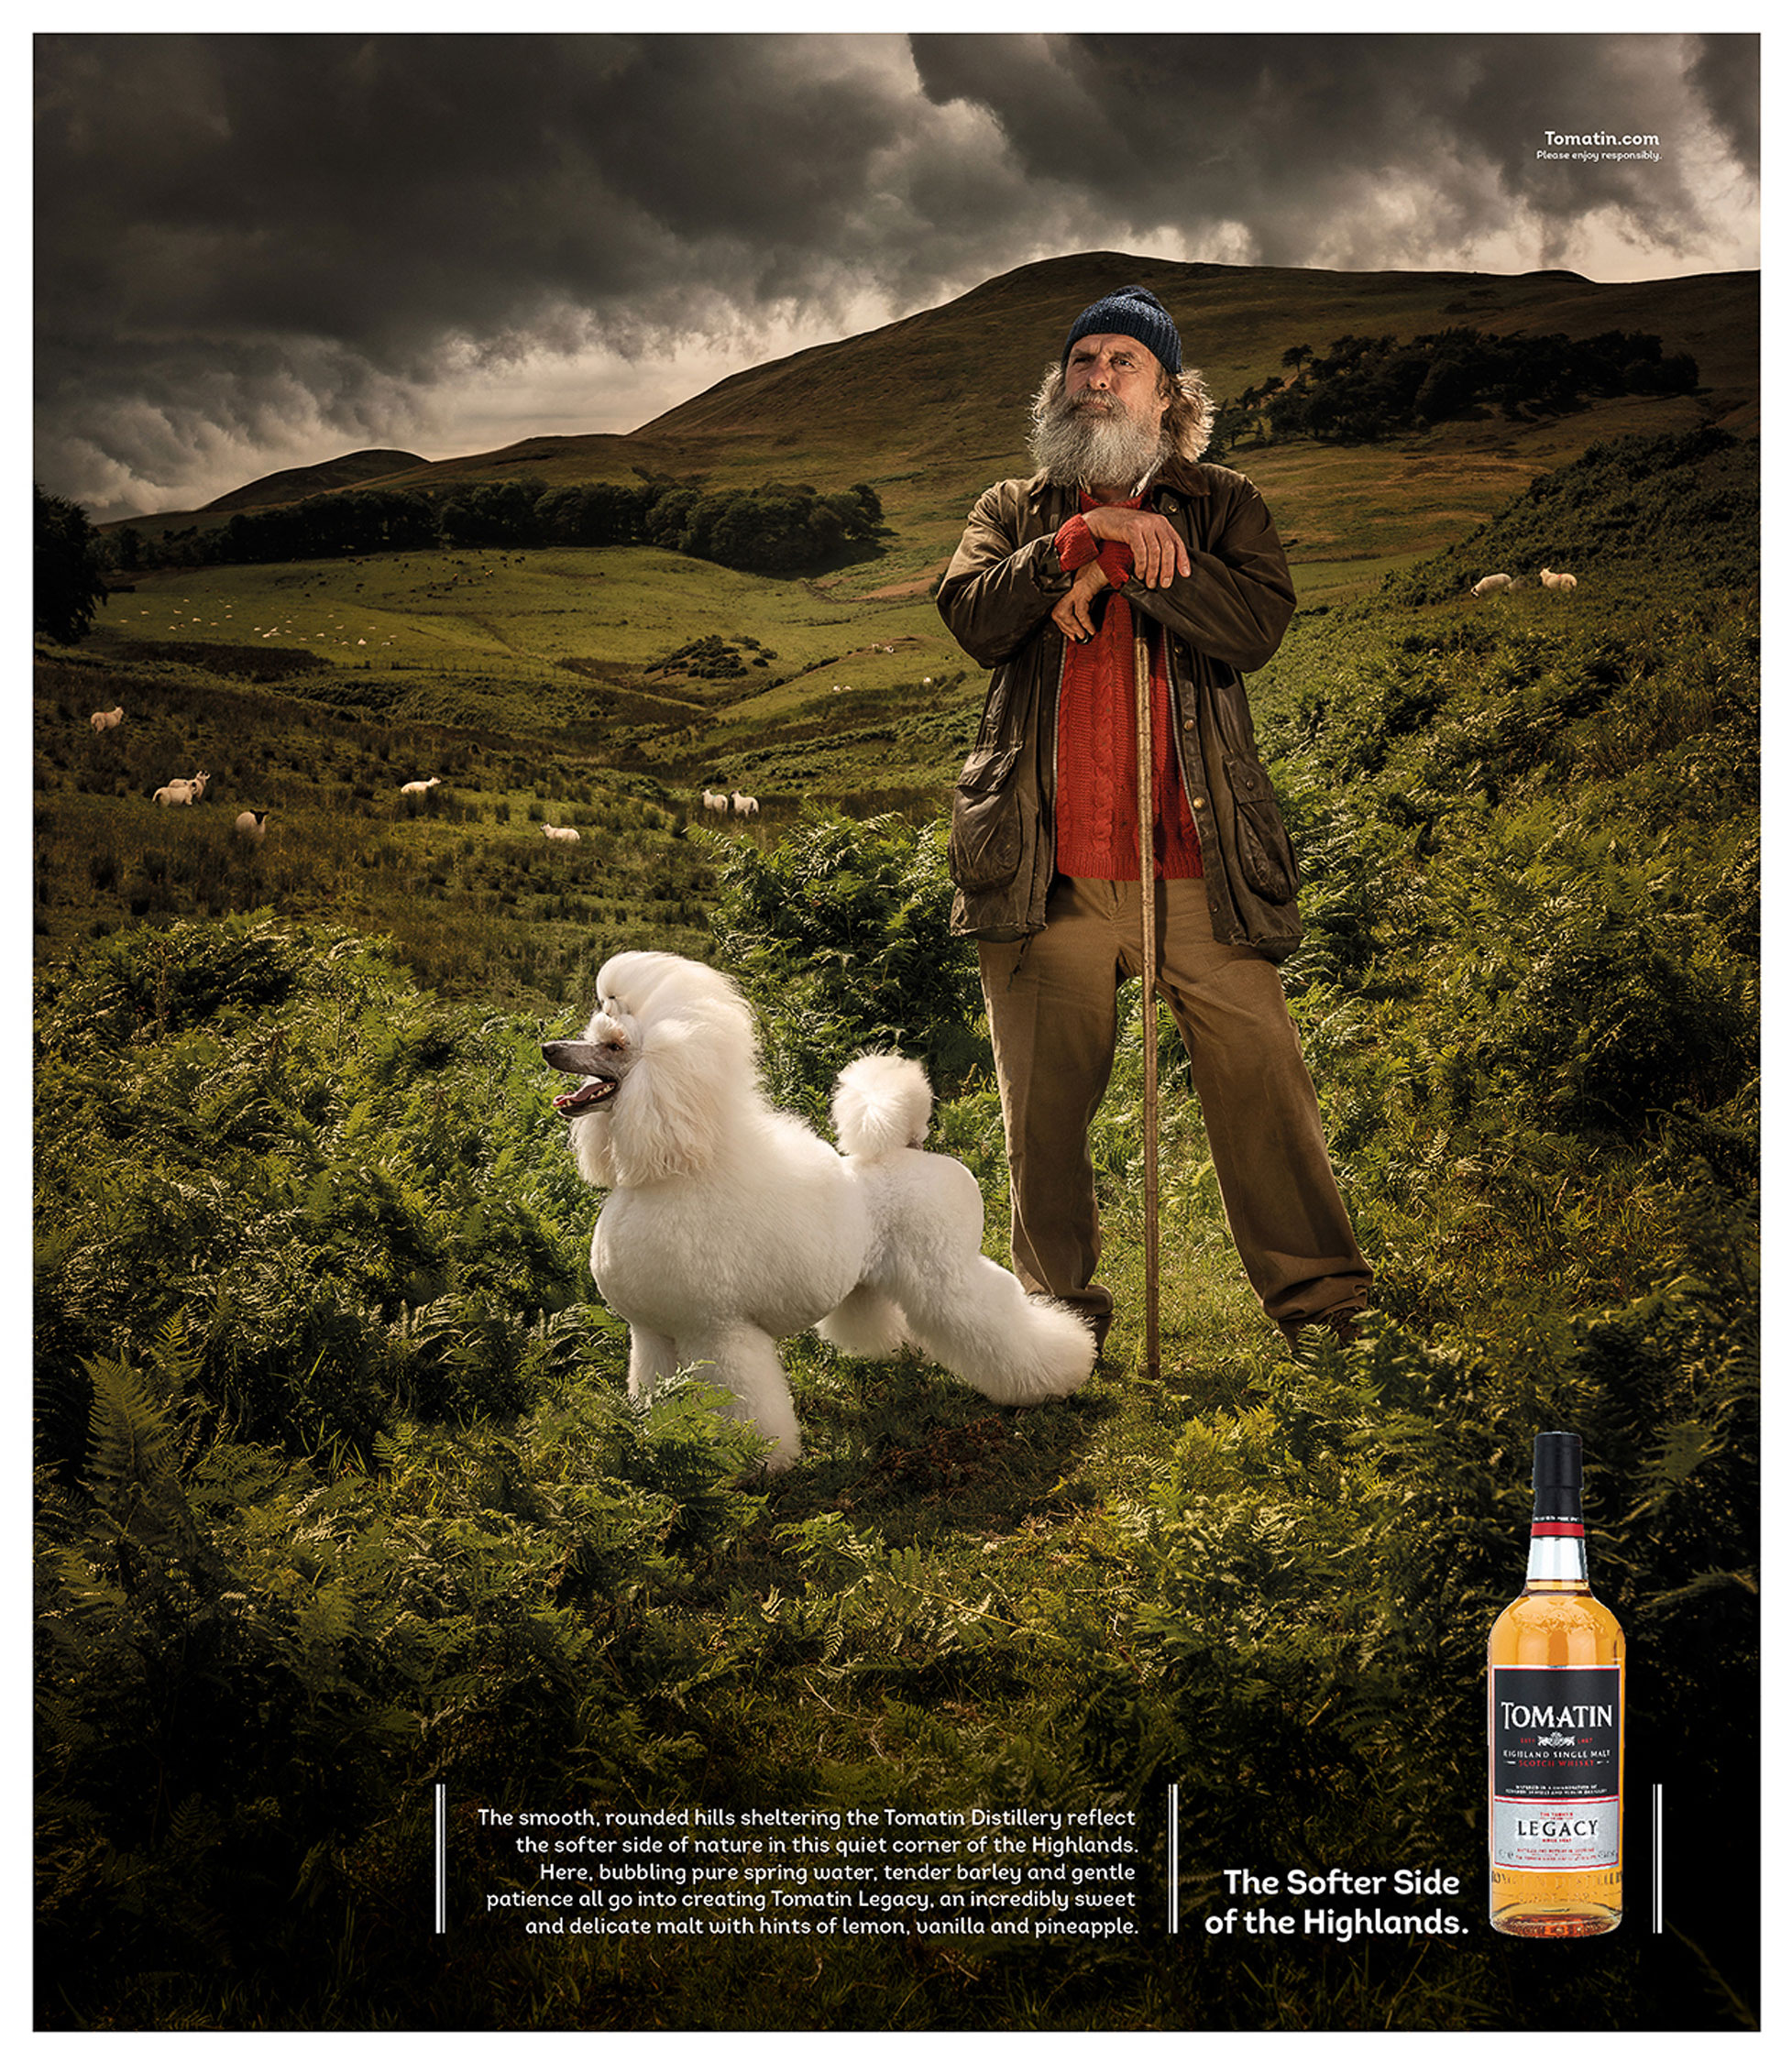 Tomatin Whisky Campaign with shepherd and poodle dog